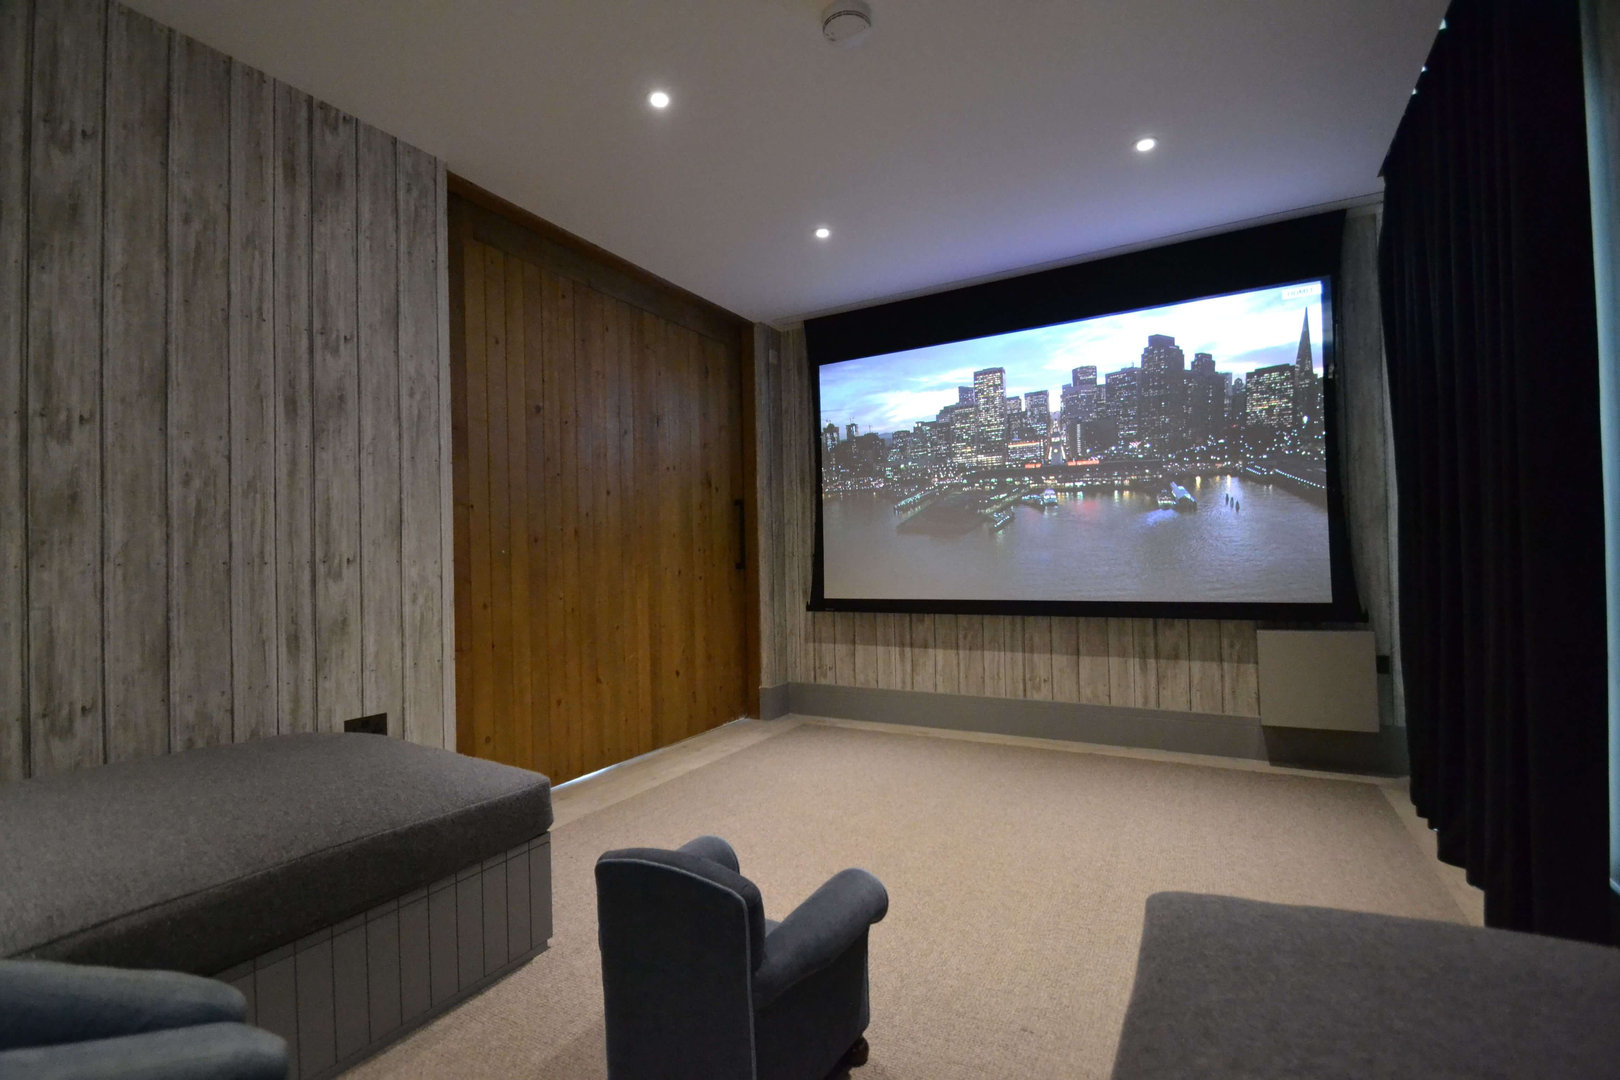 Laser Projection Screen